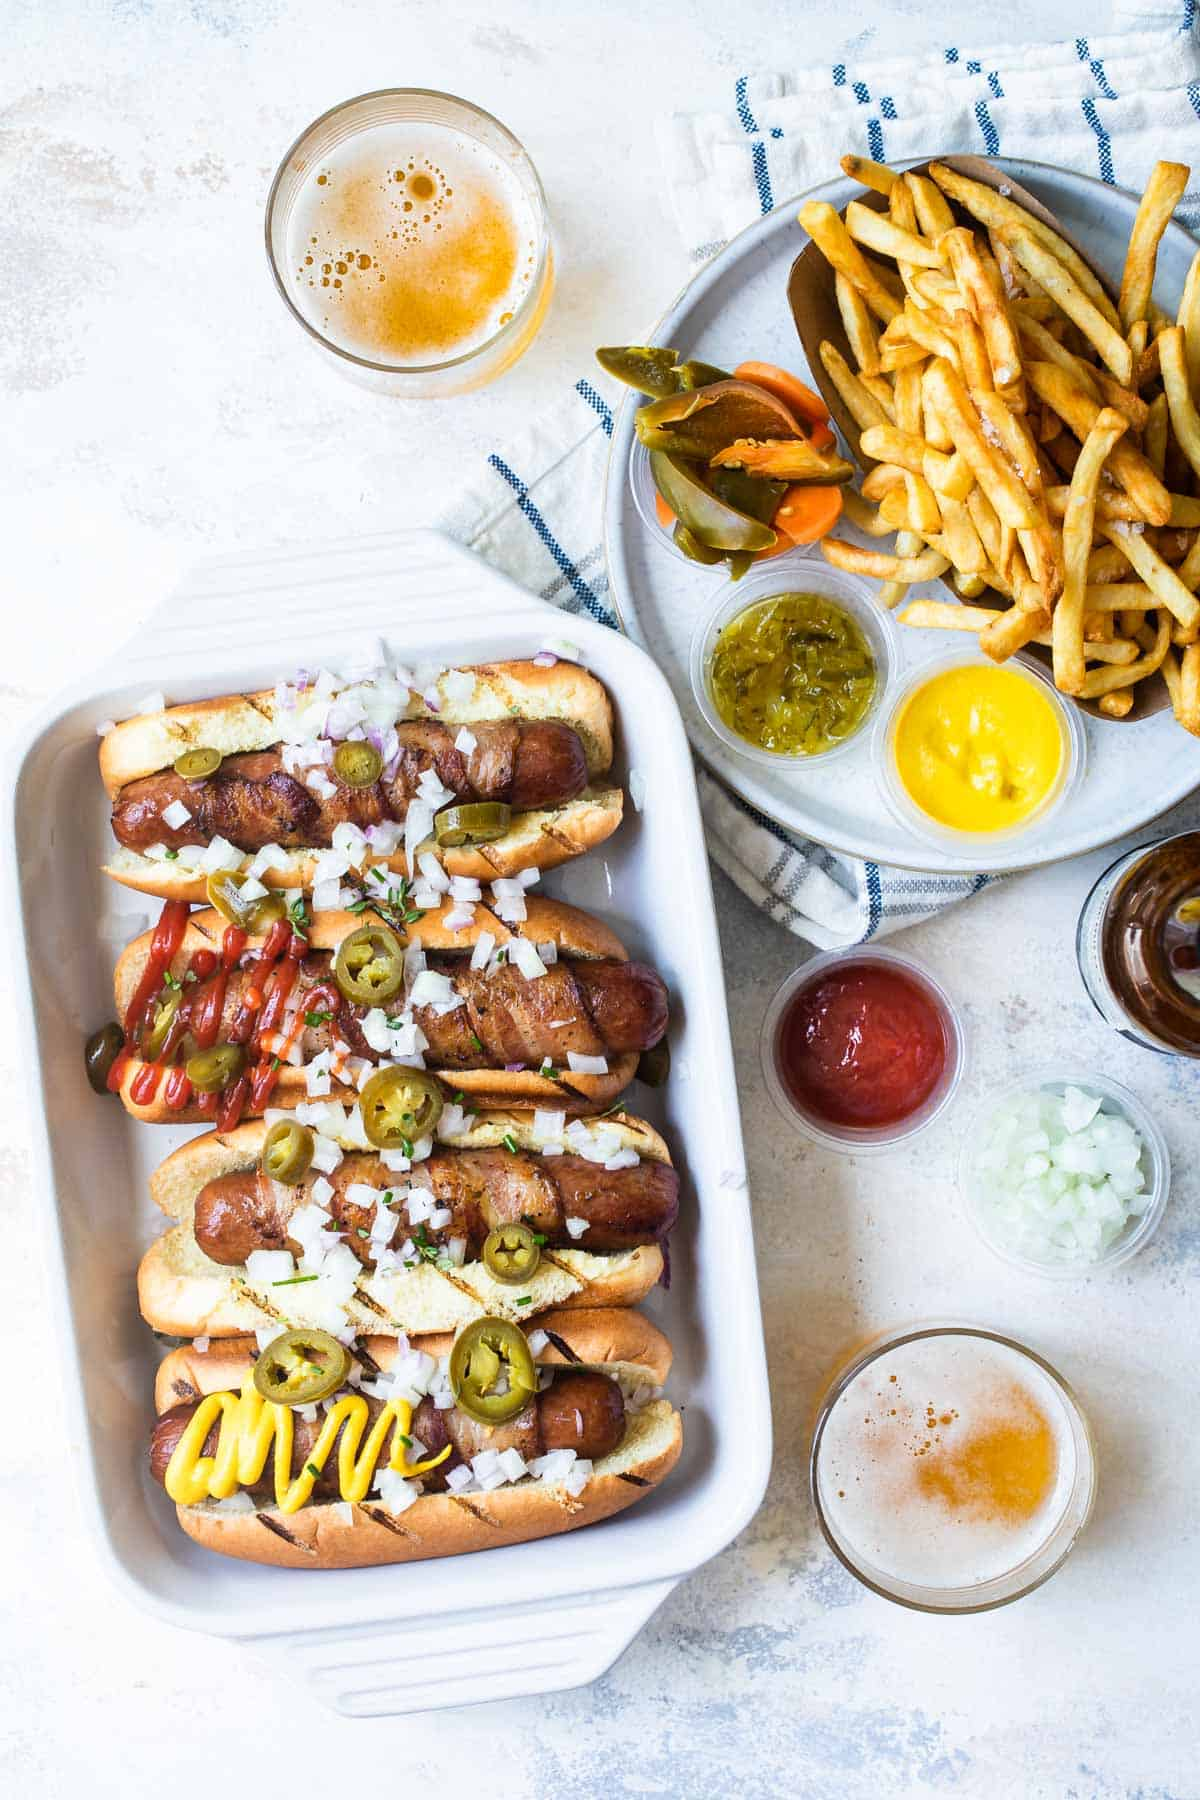 bacon wrapped hot dogs with toppings